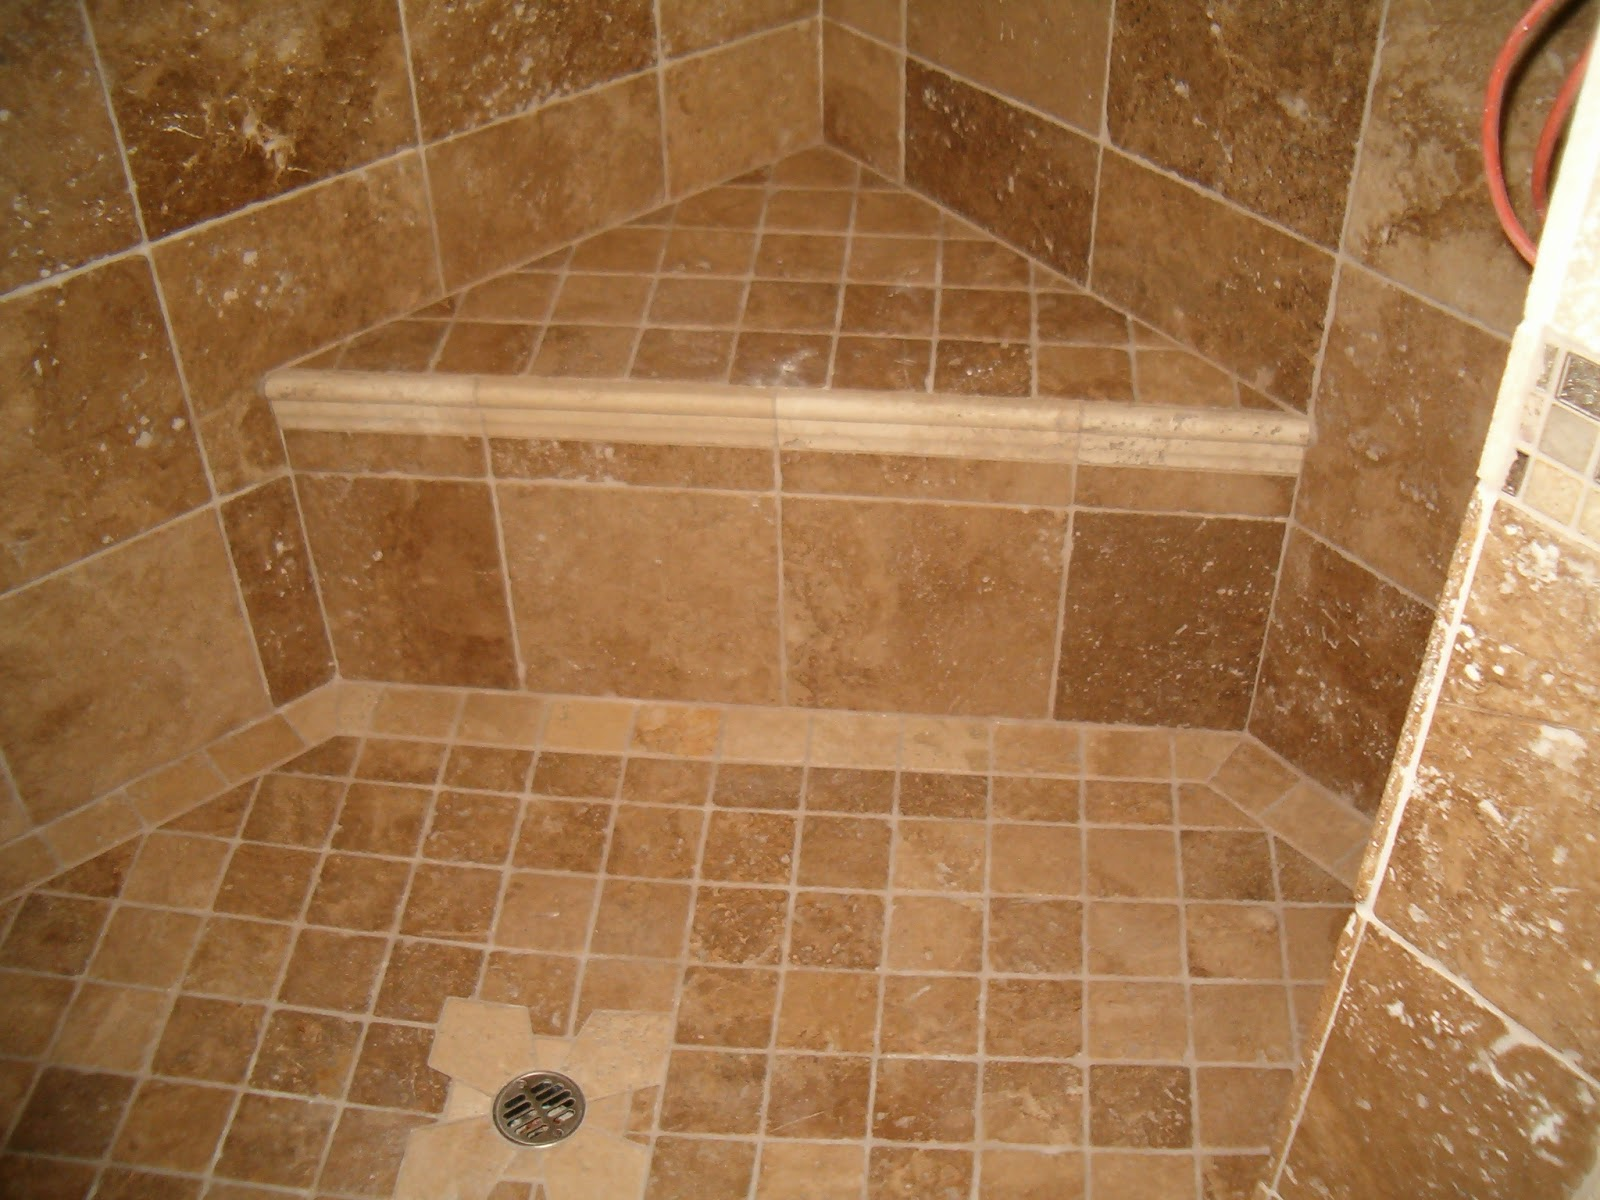 ... tile pictures tiled shower pictures tile shower photos tile shower